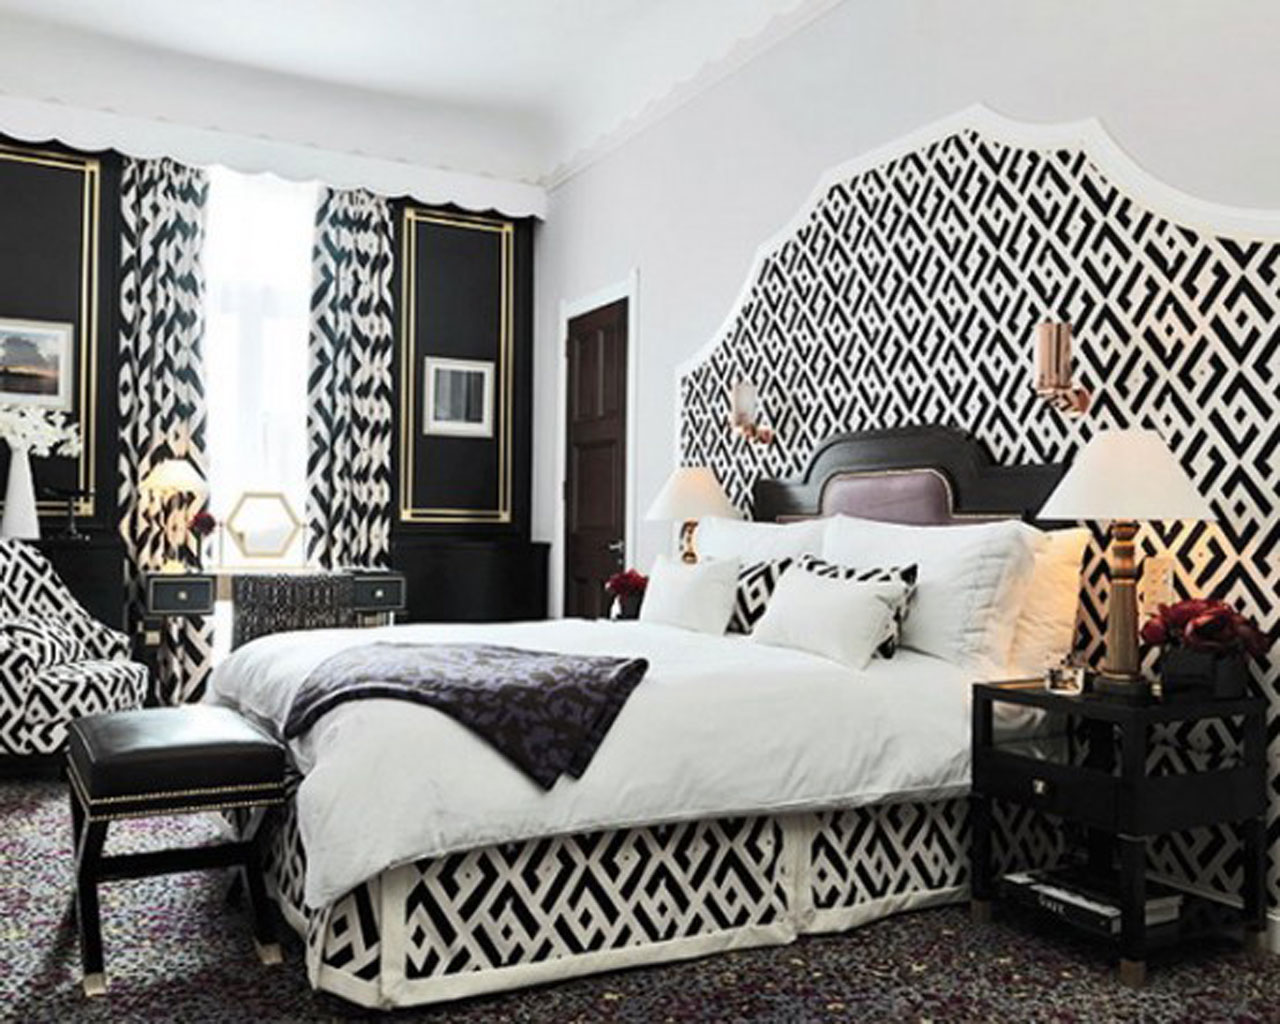 eclectic style with black and white integrated elements in interior contemporary design